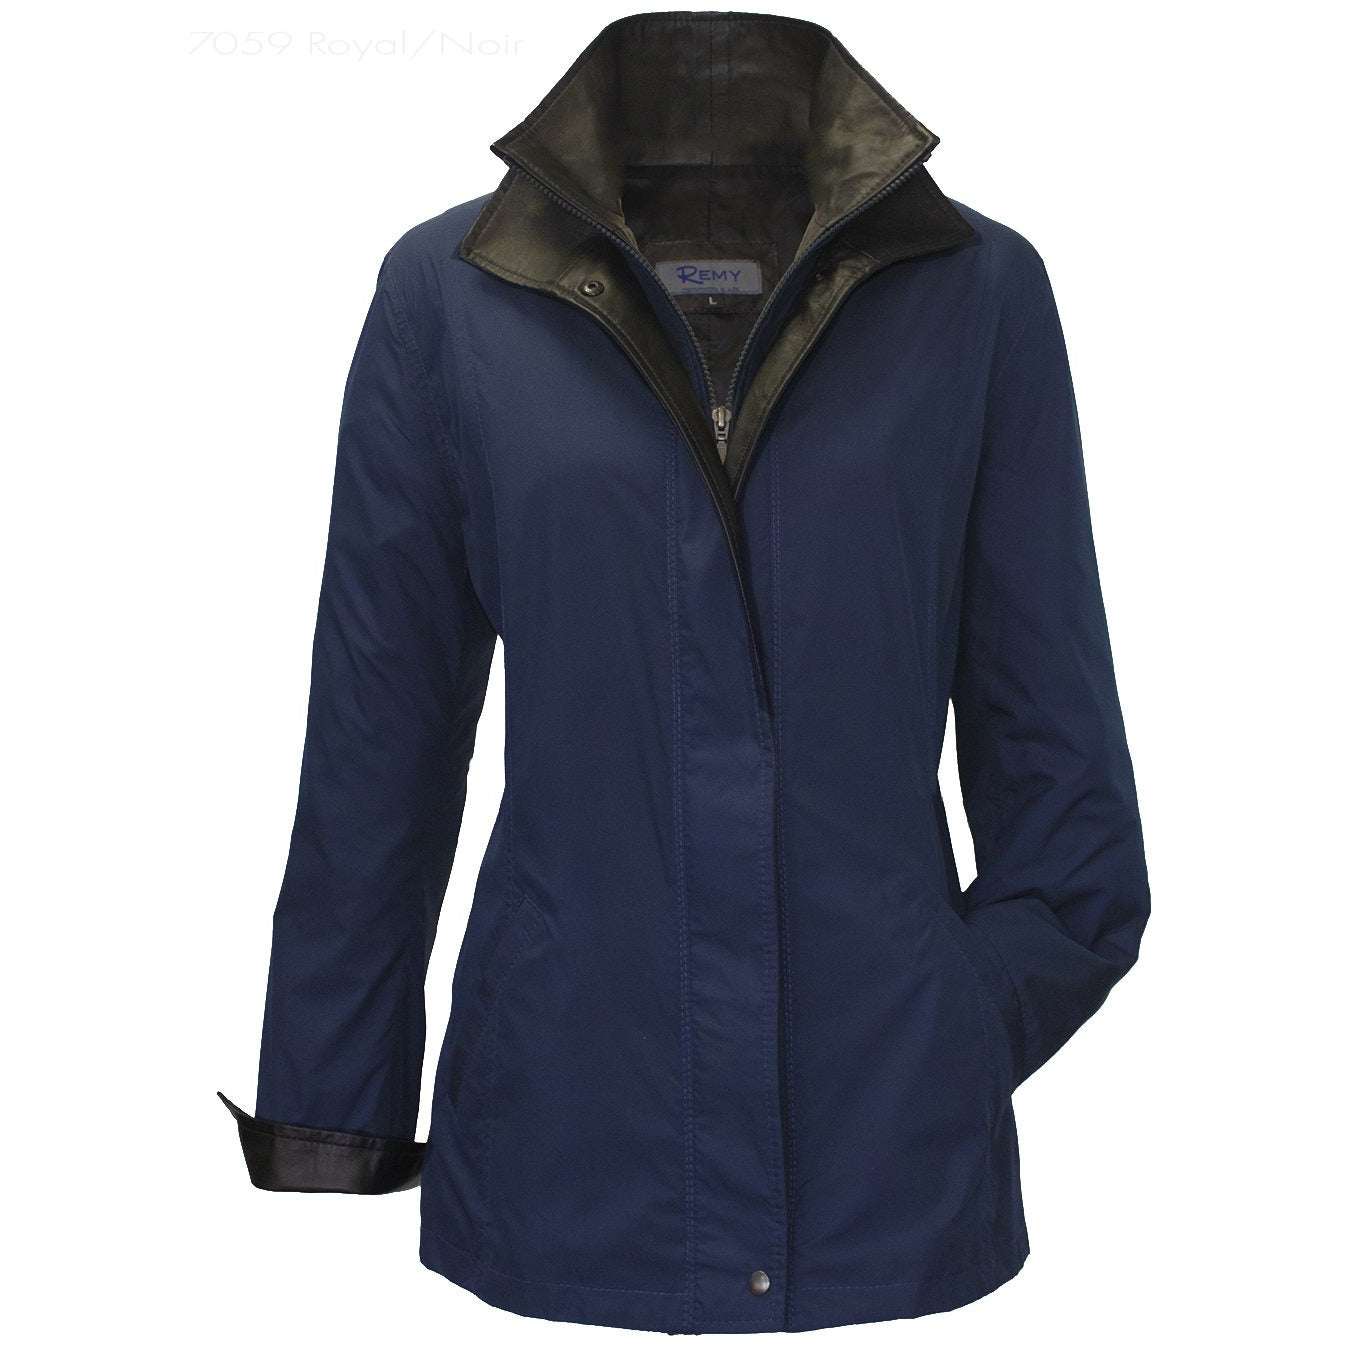 7059 - Ladies Double Collar Microfiber Coat in Royal/Noir